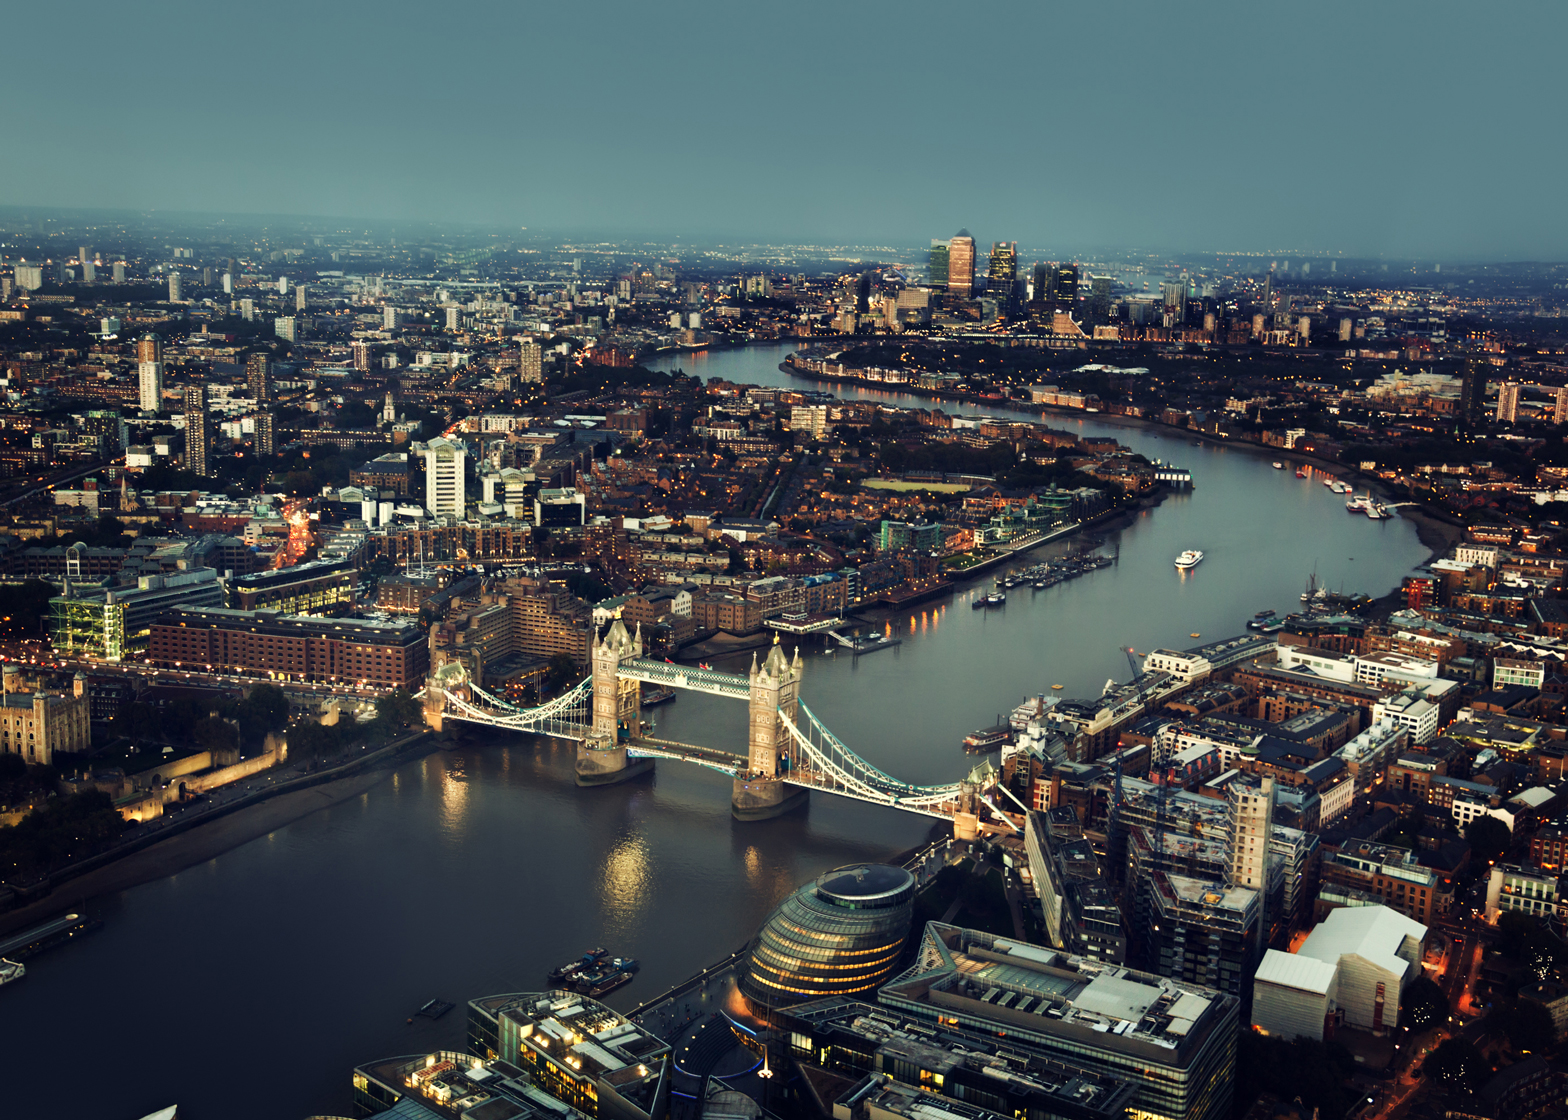 City of London, image rights Shutterstock